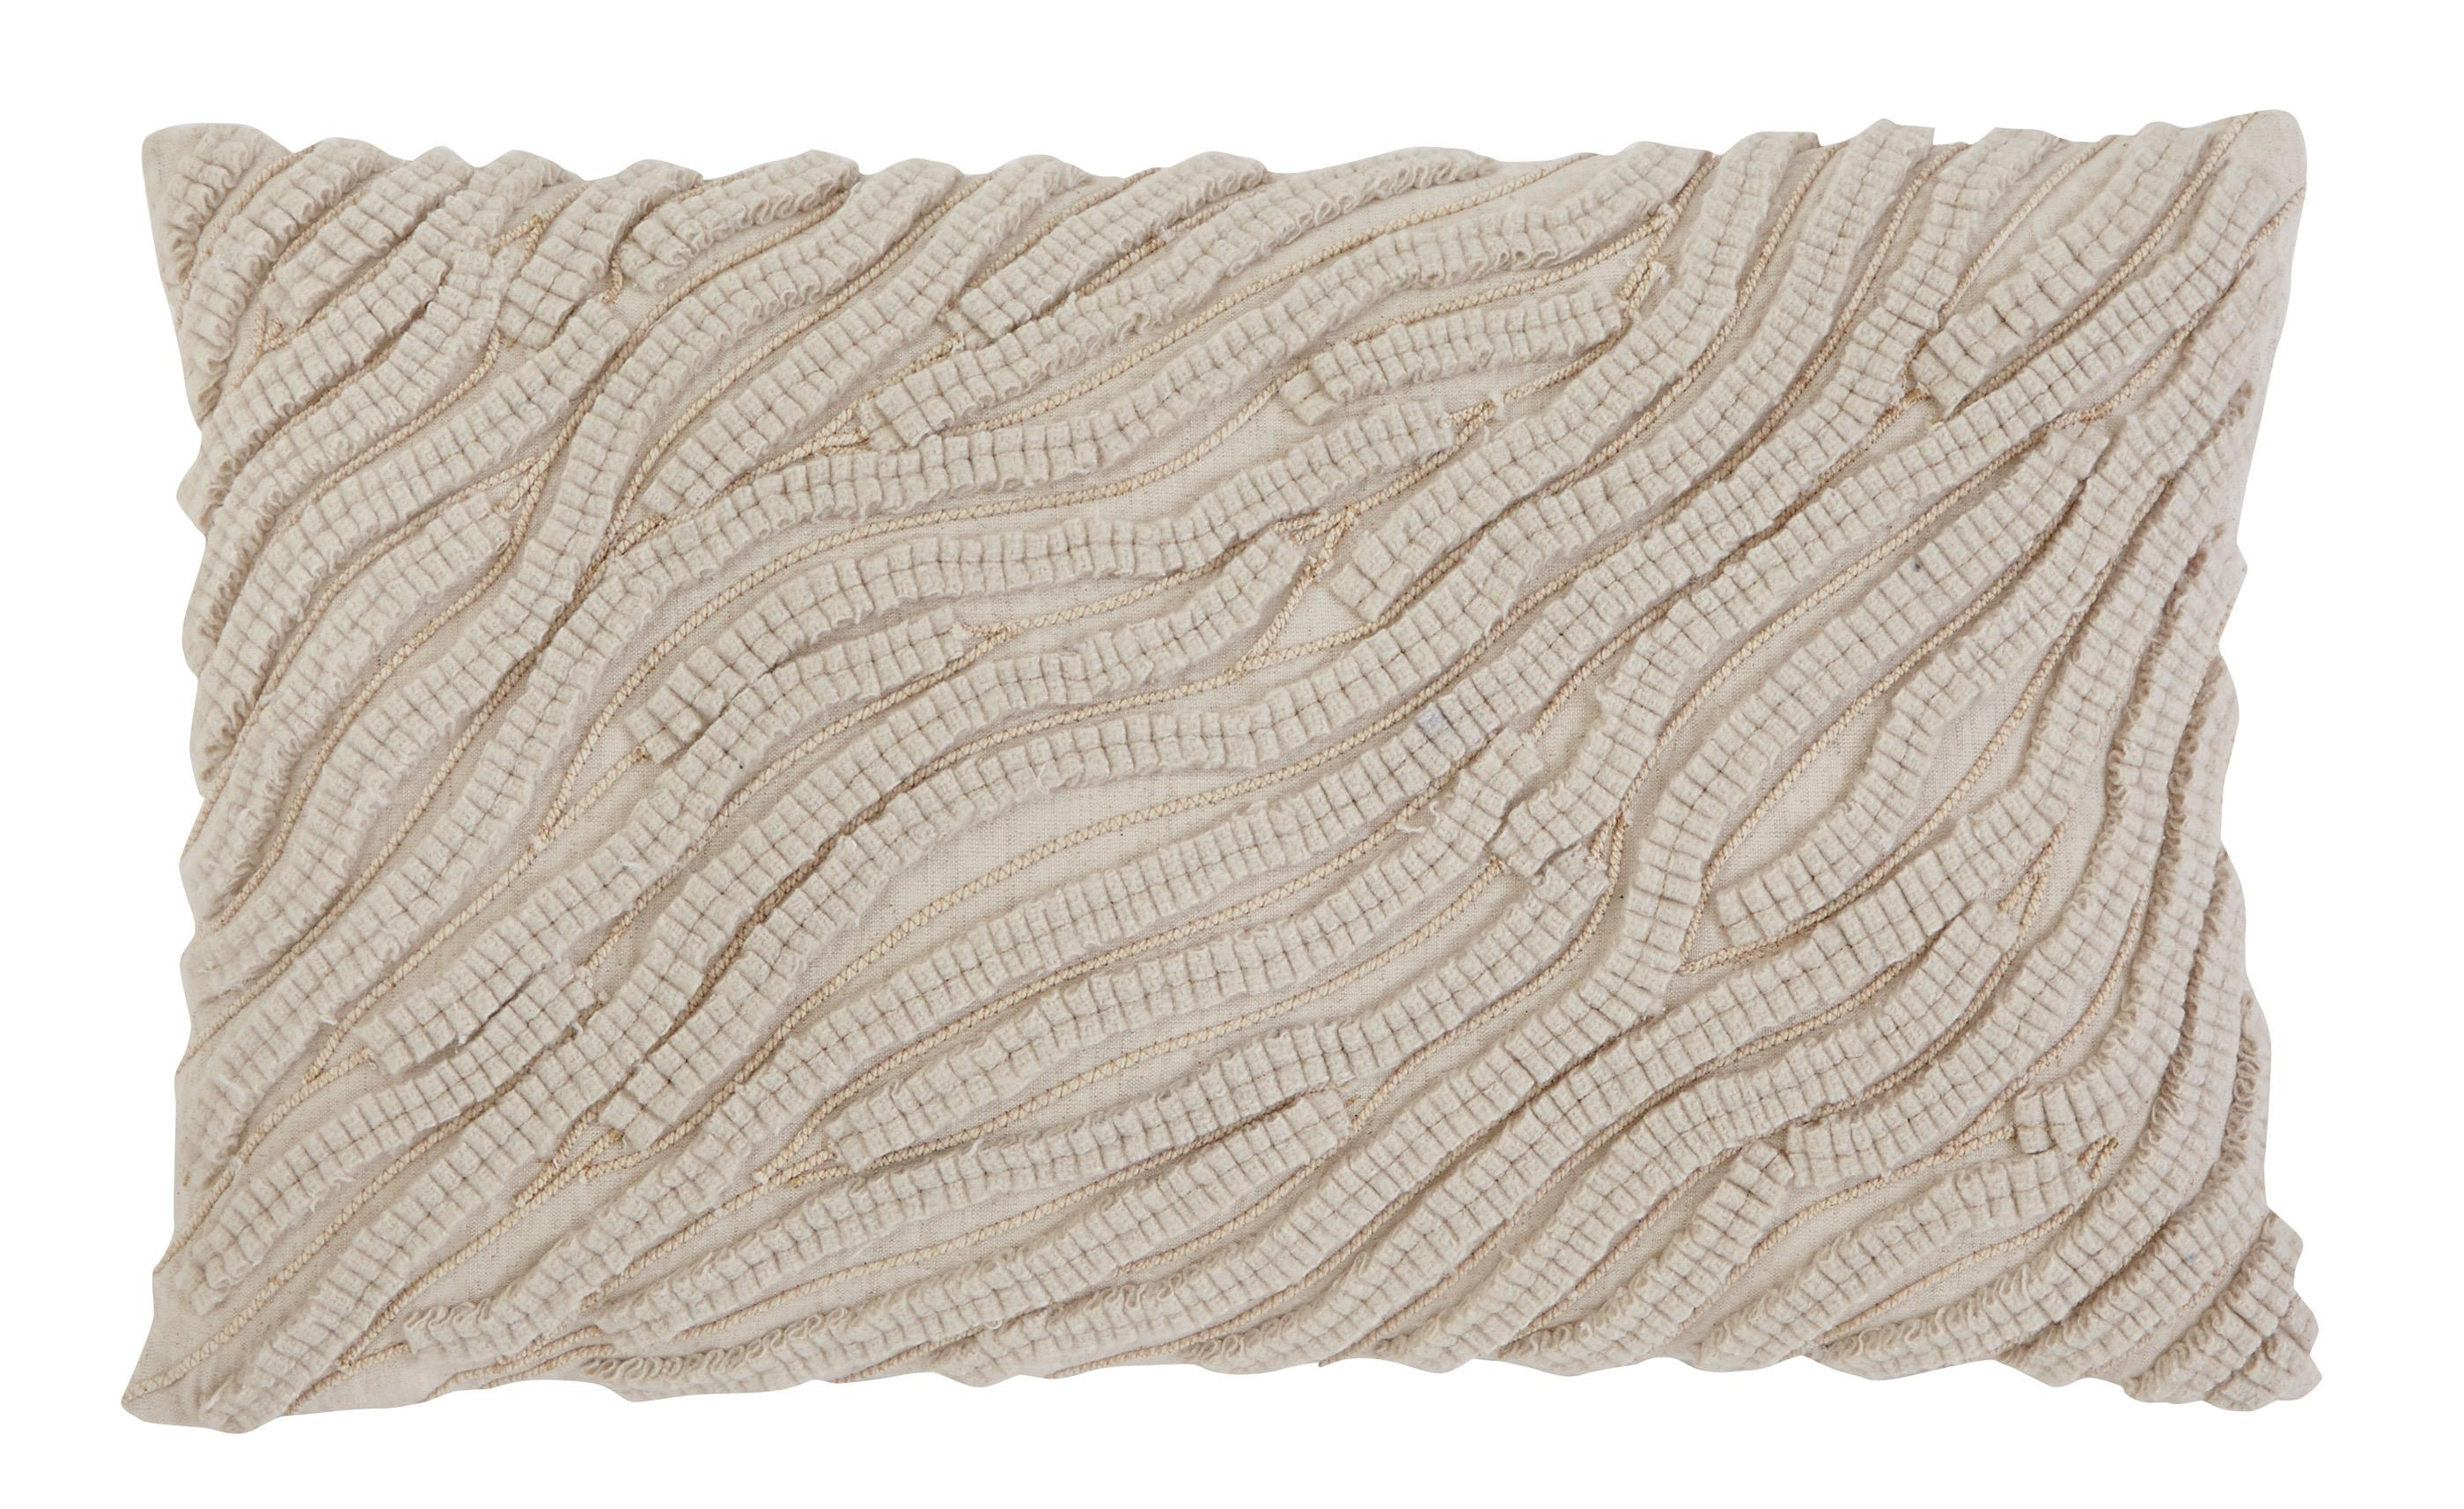 Signature Design by Ashley Pillows Stitched - Natural Lumbar Pillow - Item Number: A1000264P